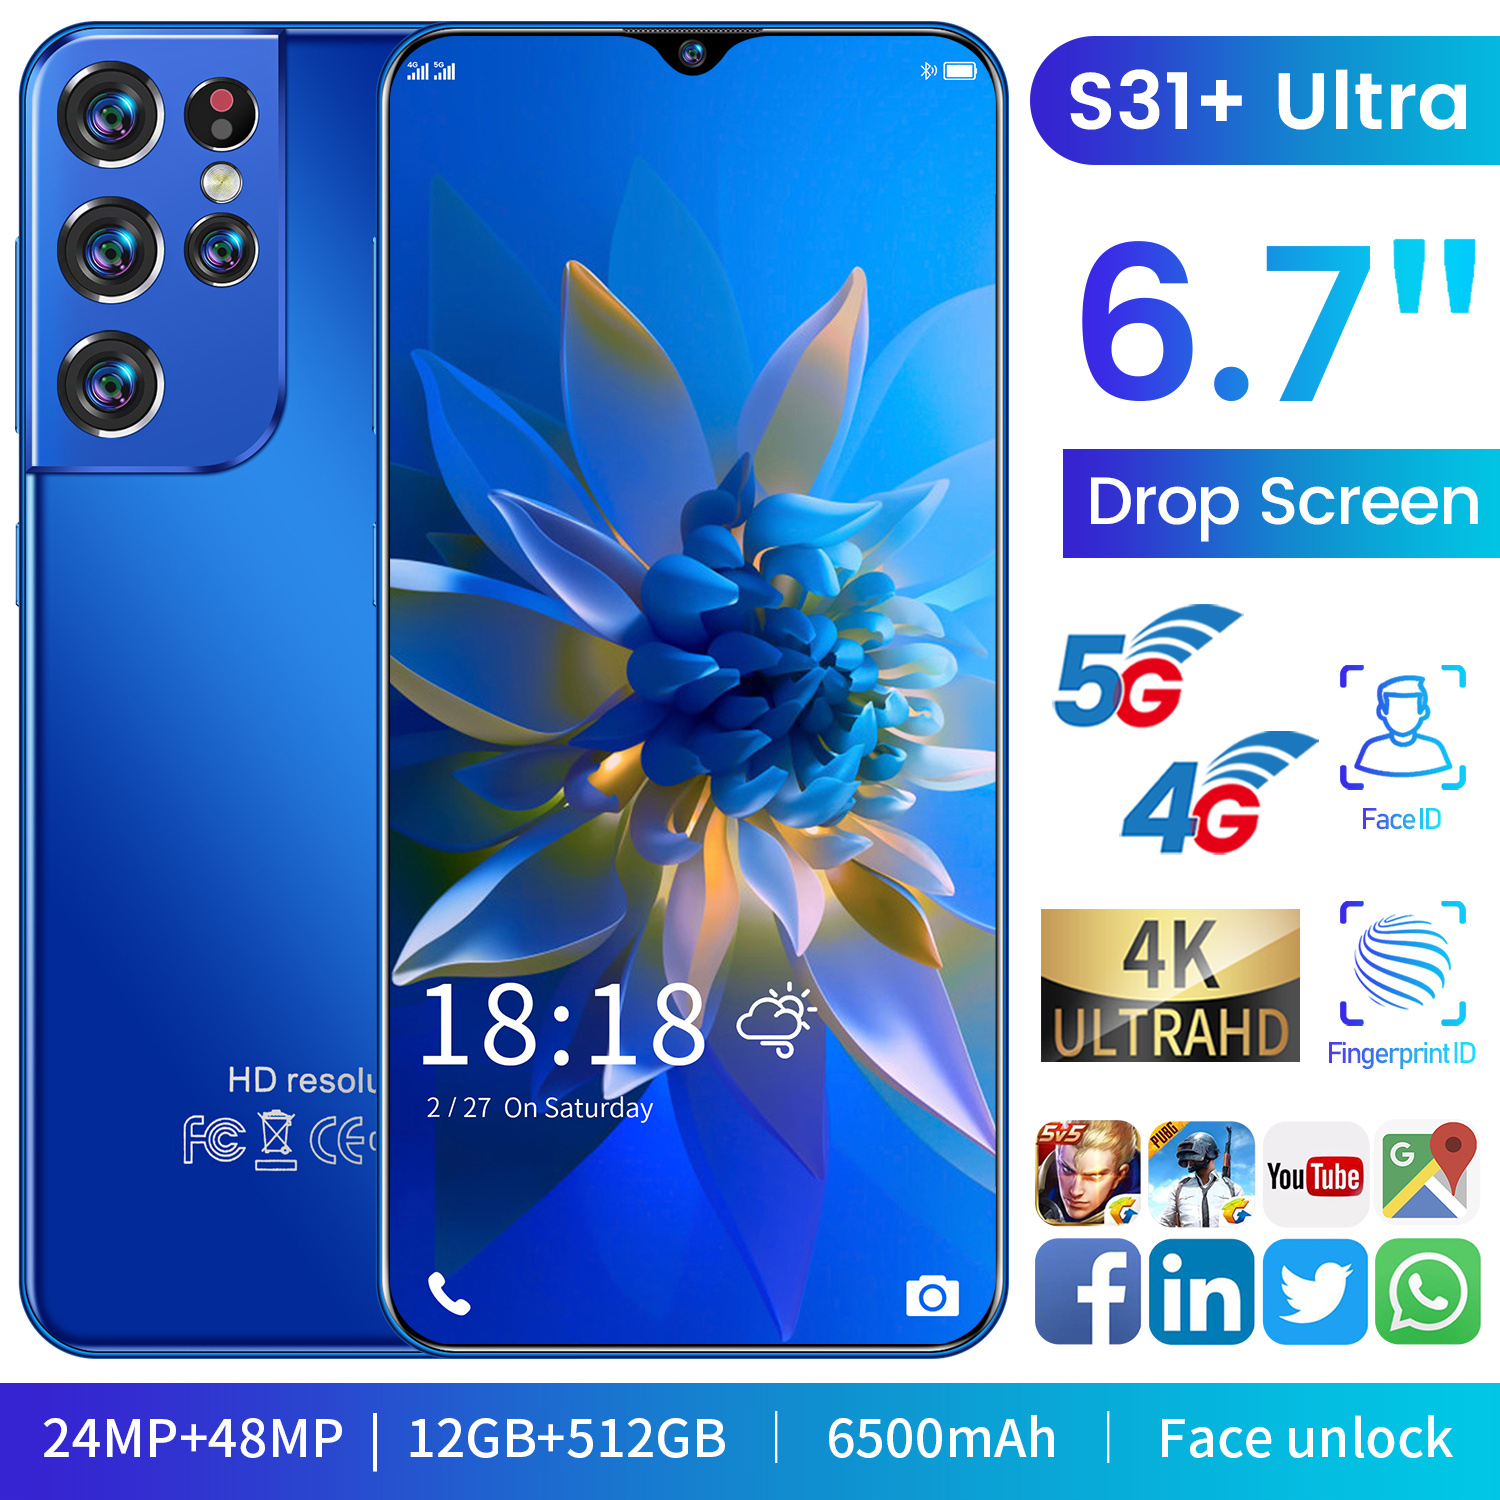 Global Version S31+ Ultra 6.7inch Android 11 Smartphone 12+512GB Face ID Fingerprint Unlock GPS 24+48MP 4G 5G Network Cellphone